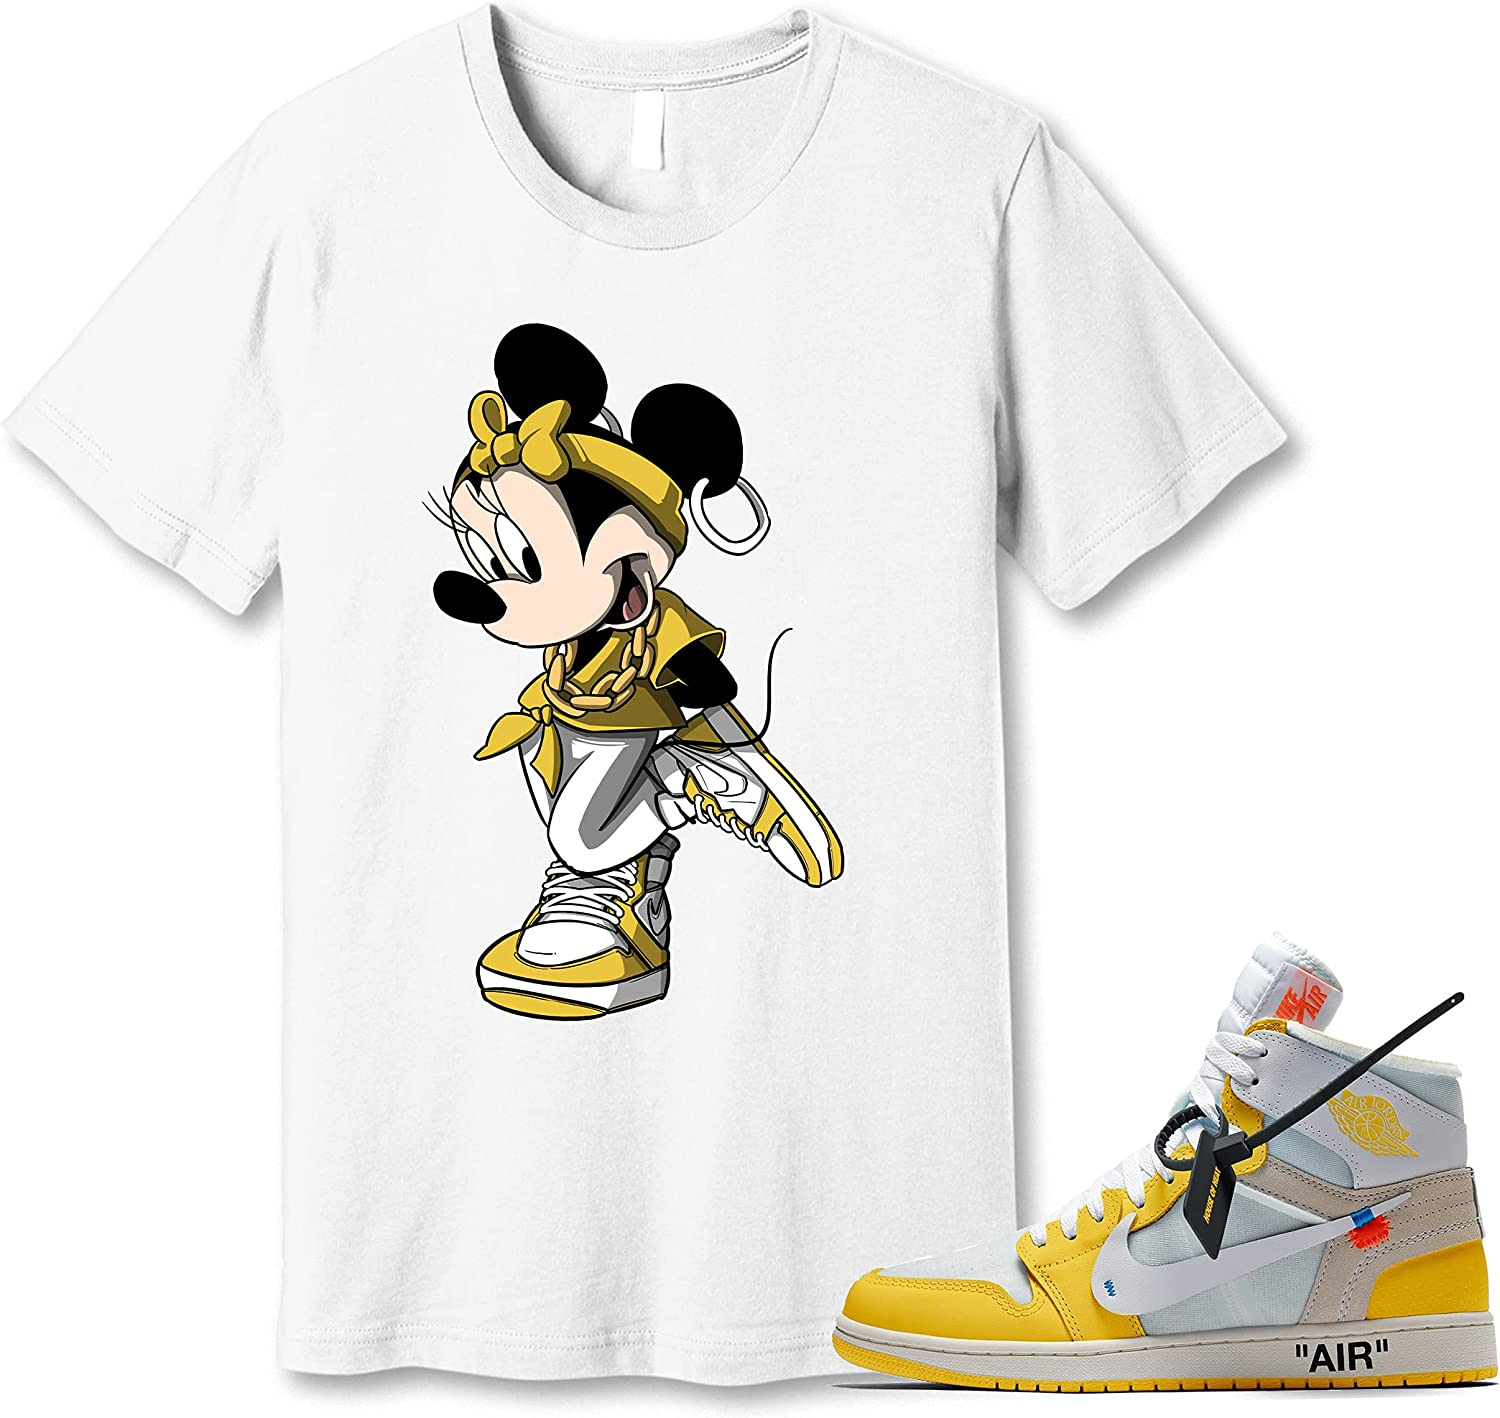 #Minnie Mouse White Shirt to Regular discount Match 1 Sneake Max 83% OFF Yellow Jordan Canary